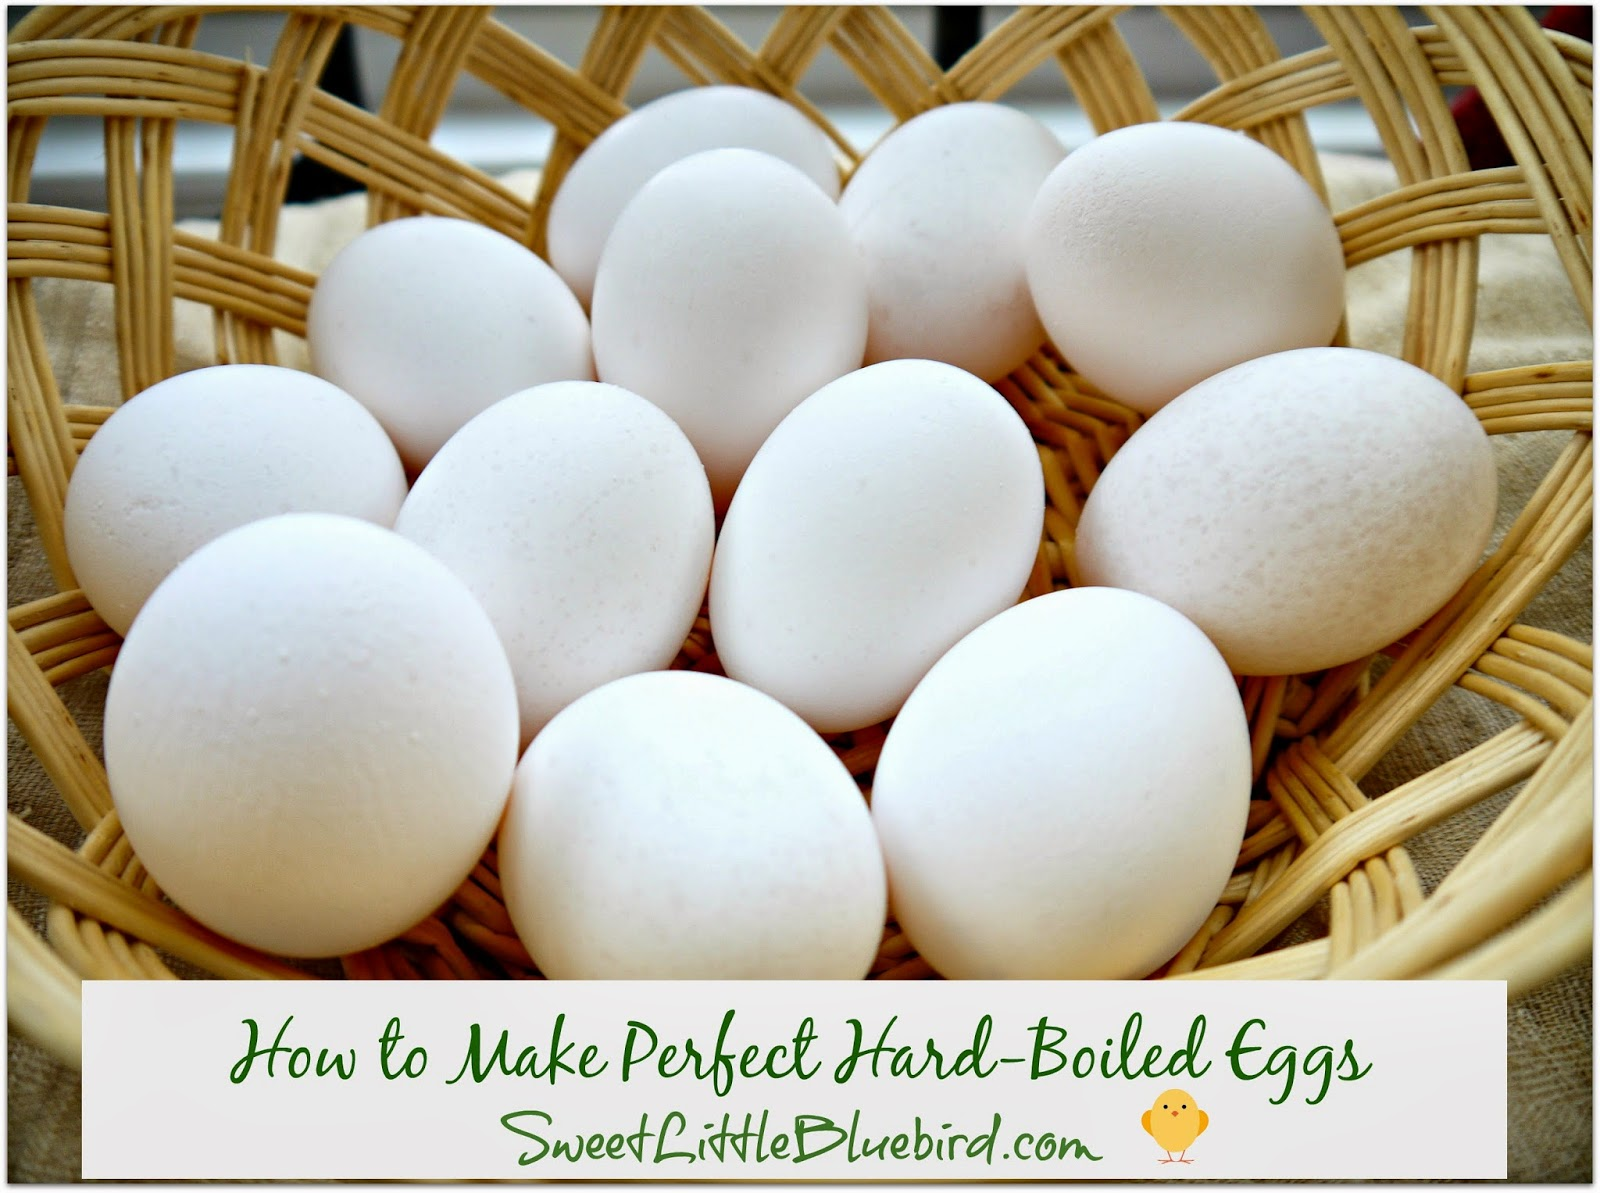 Sweet Little Bluebird: How to Make Perfect Hard-Boiled Eggs